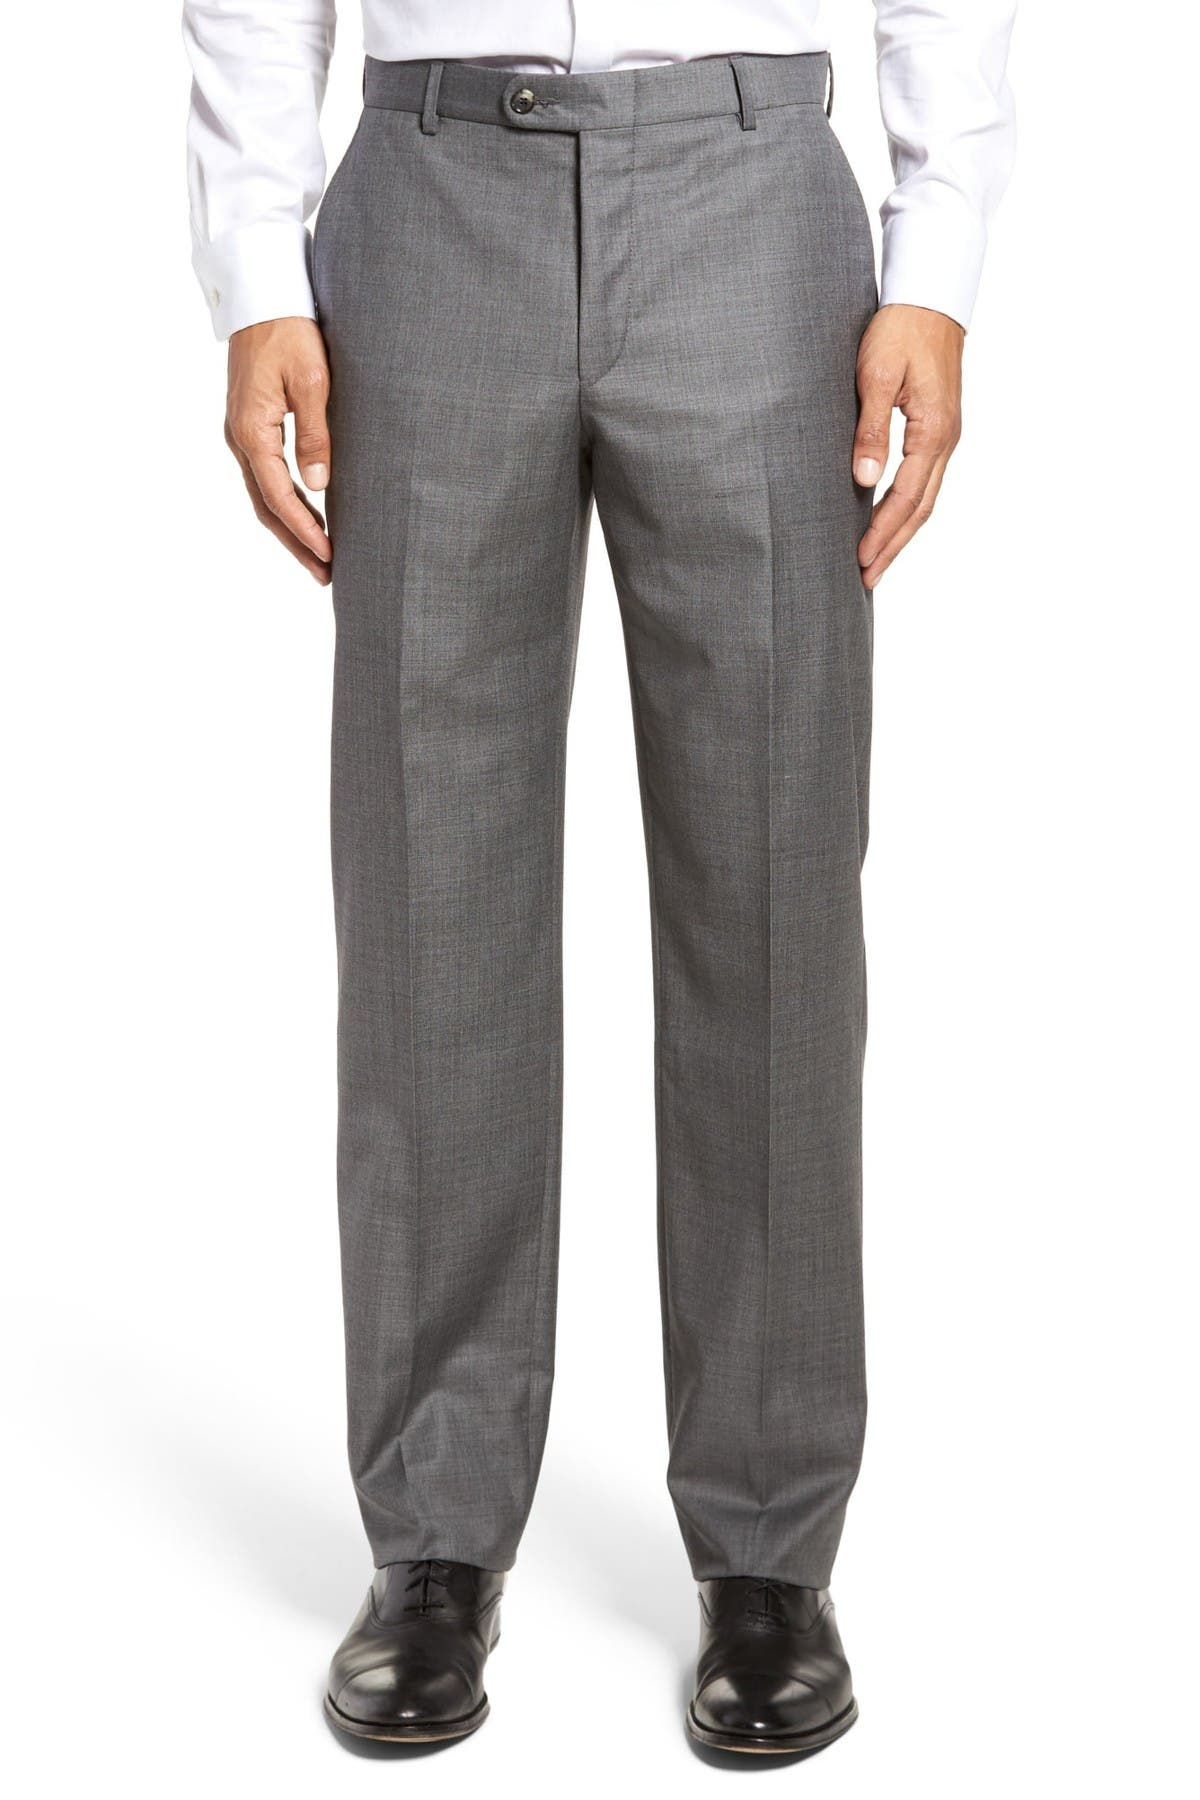 Image of Hickey Freeman Tasmanian Grey Sharkskin Flat Front Wool Suit Separates Trousers